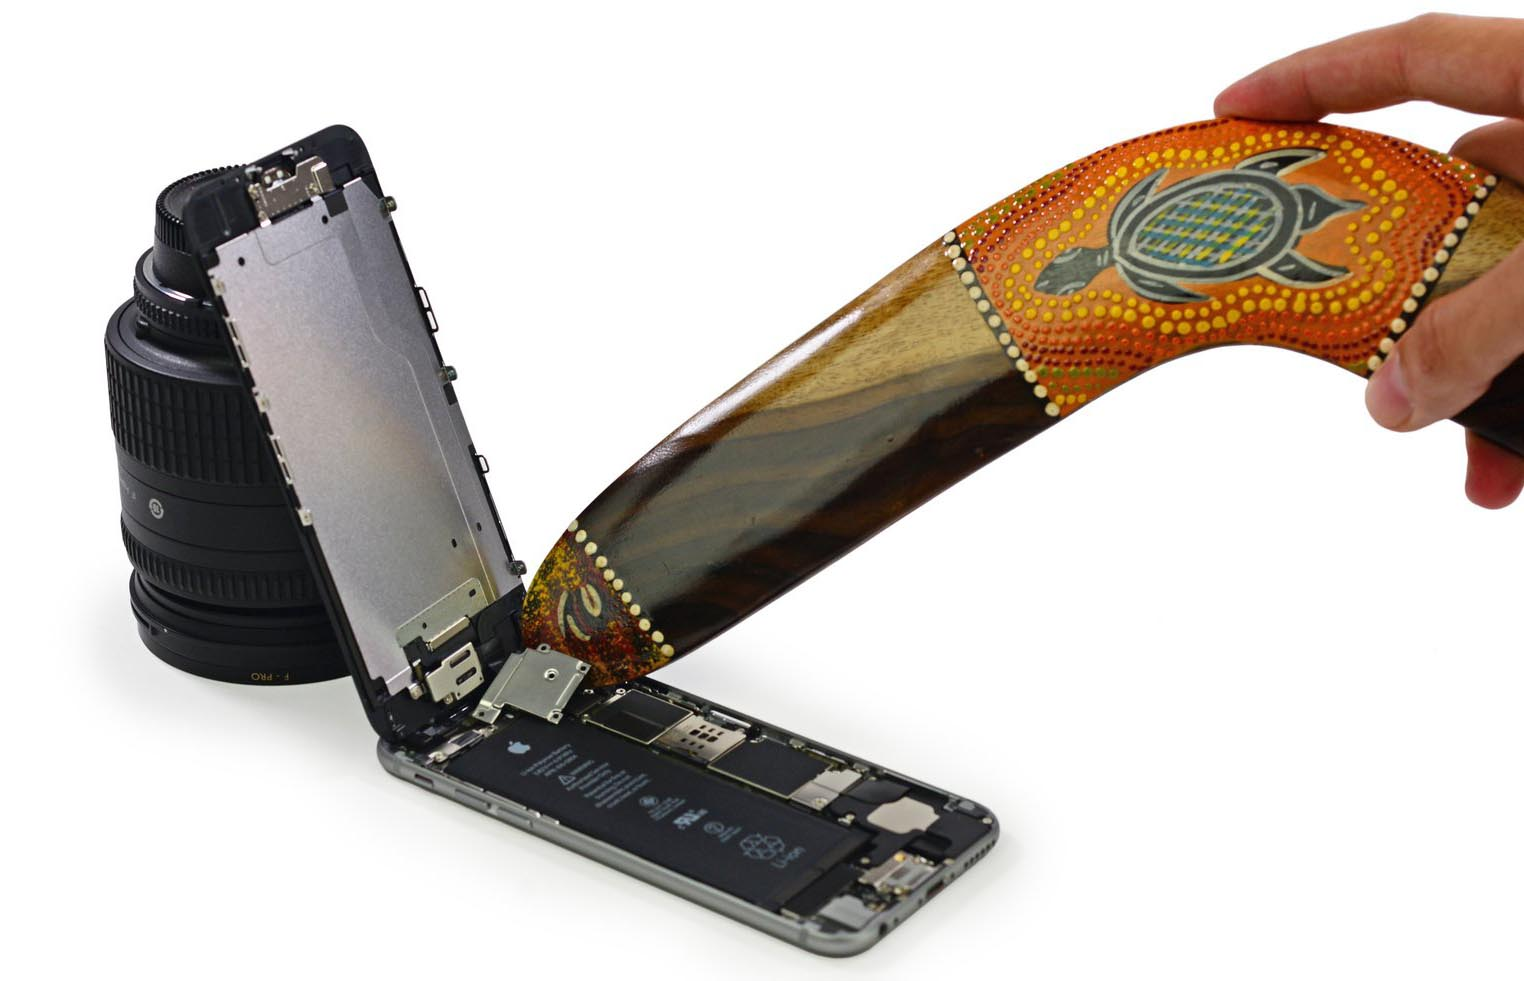 iPhone 6 Boomerang